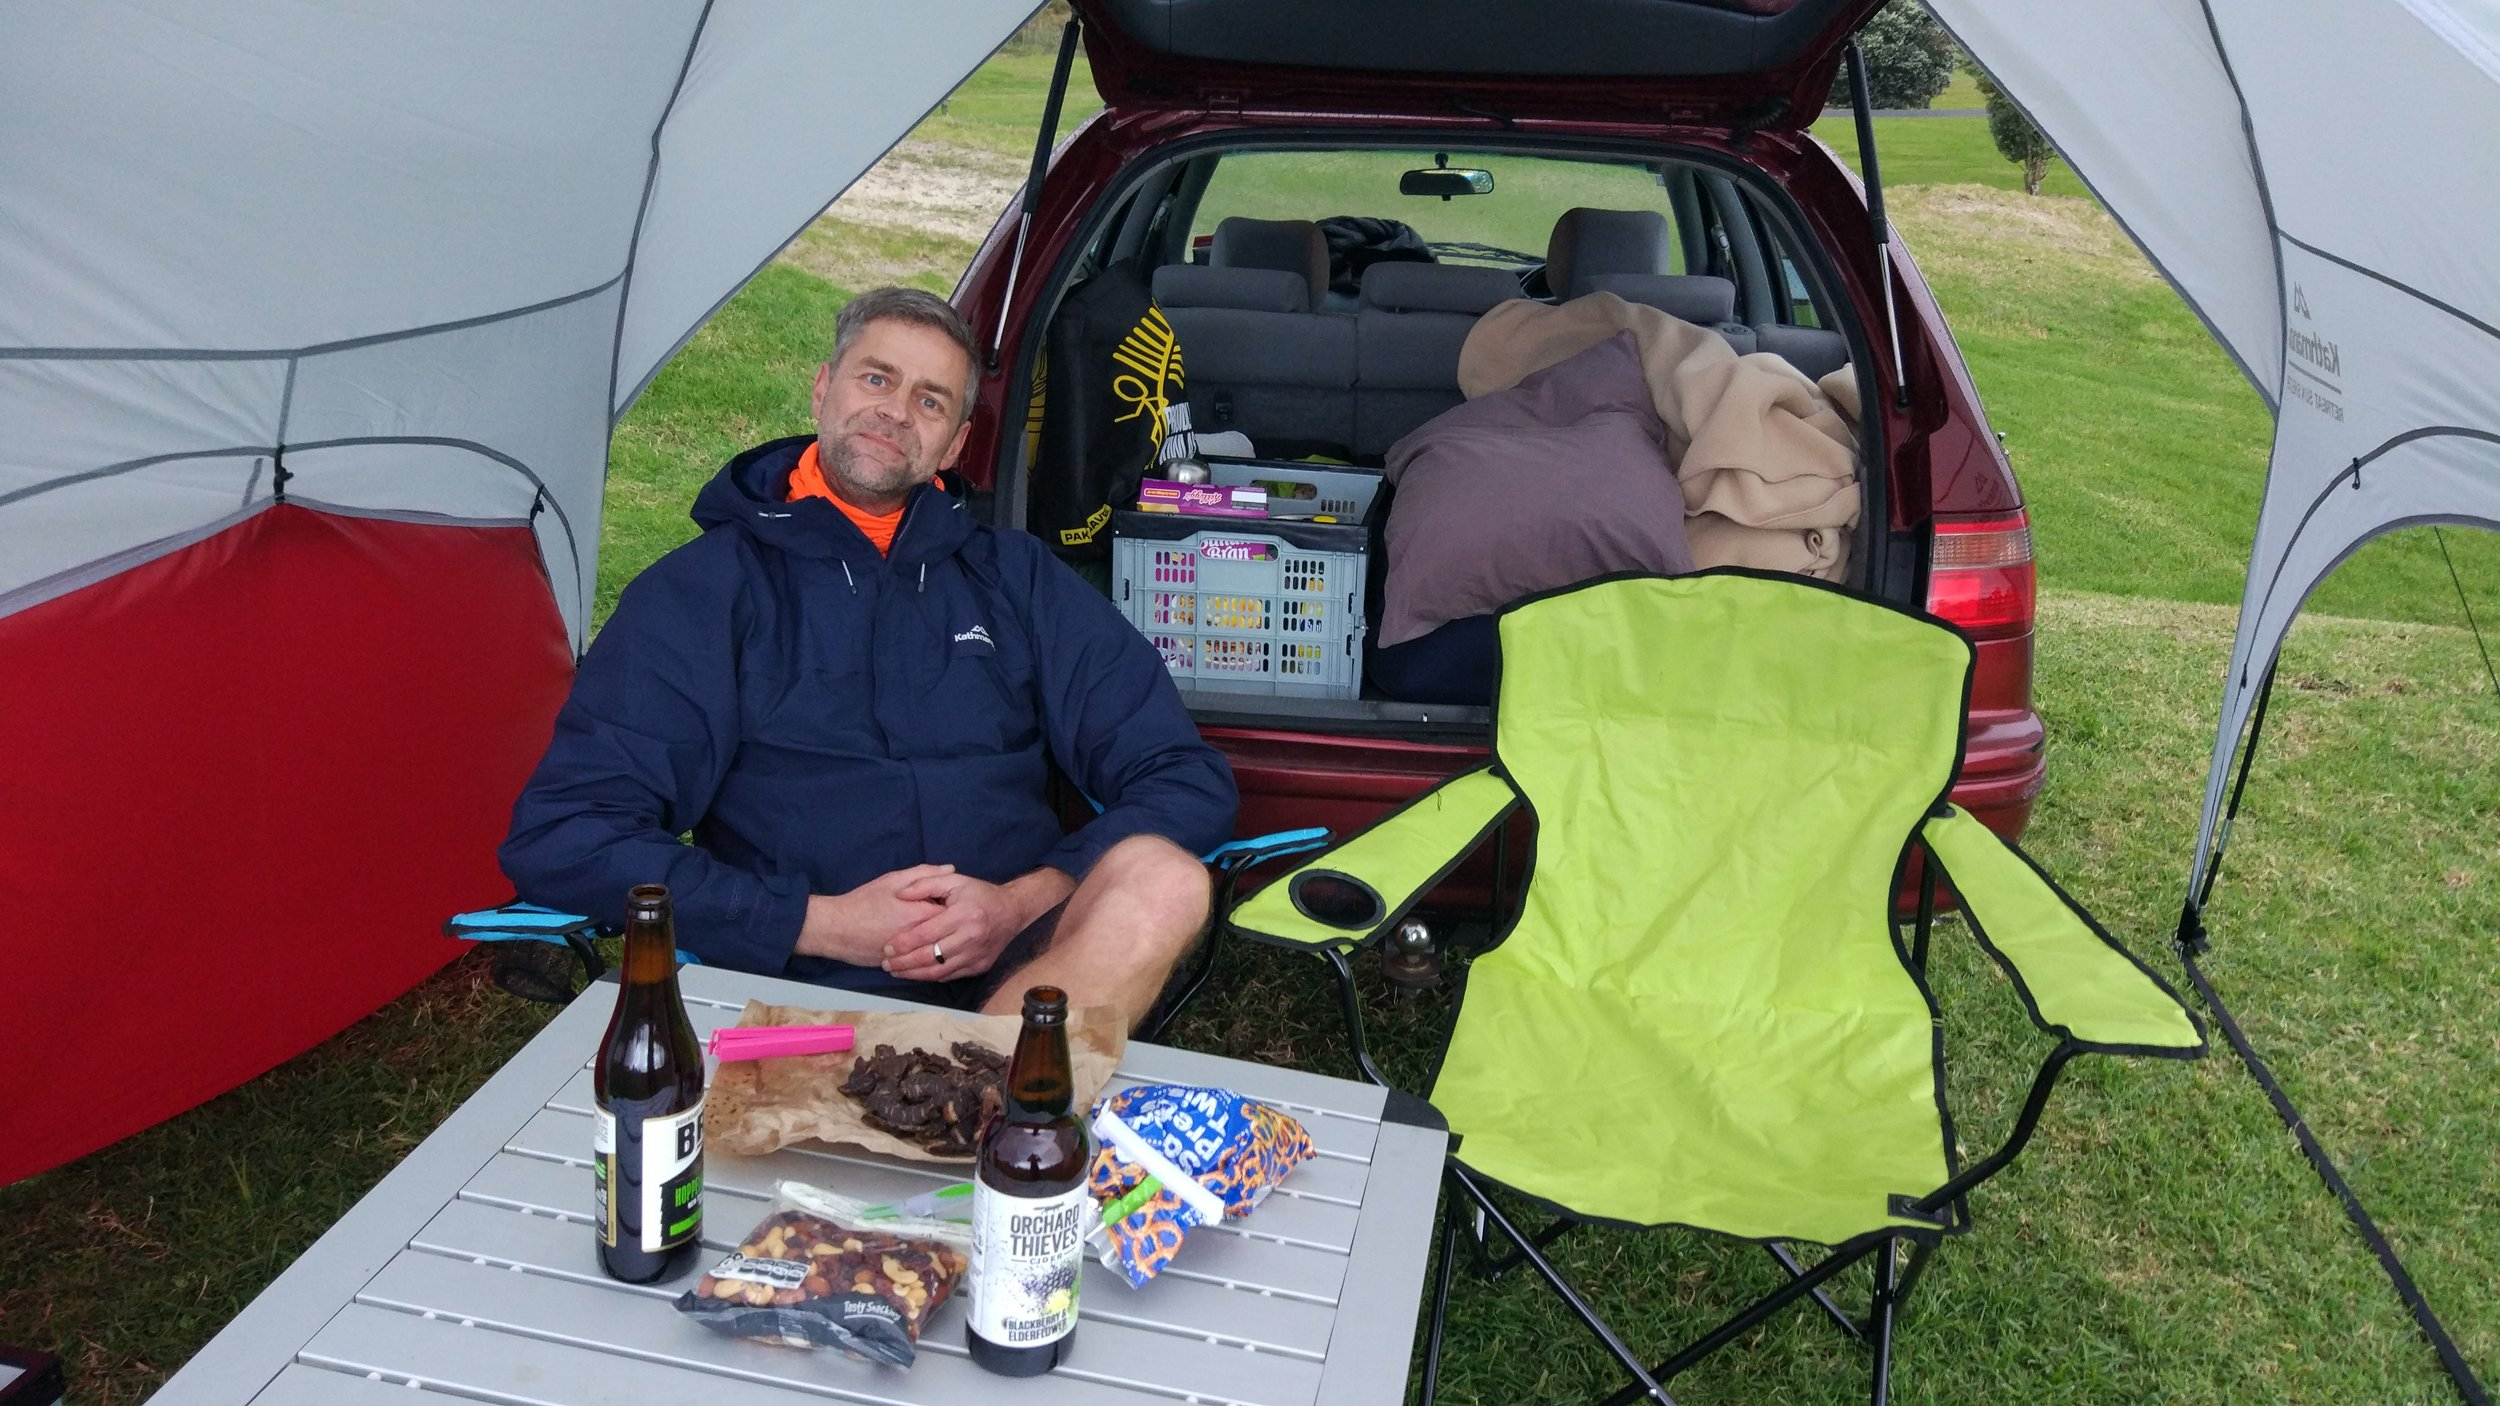 20170909_Northland_Whangarei_Uretiti_DOC_Campground_day2_apero.jpg